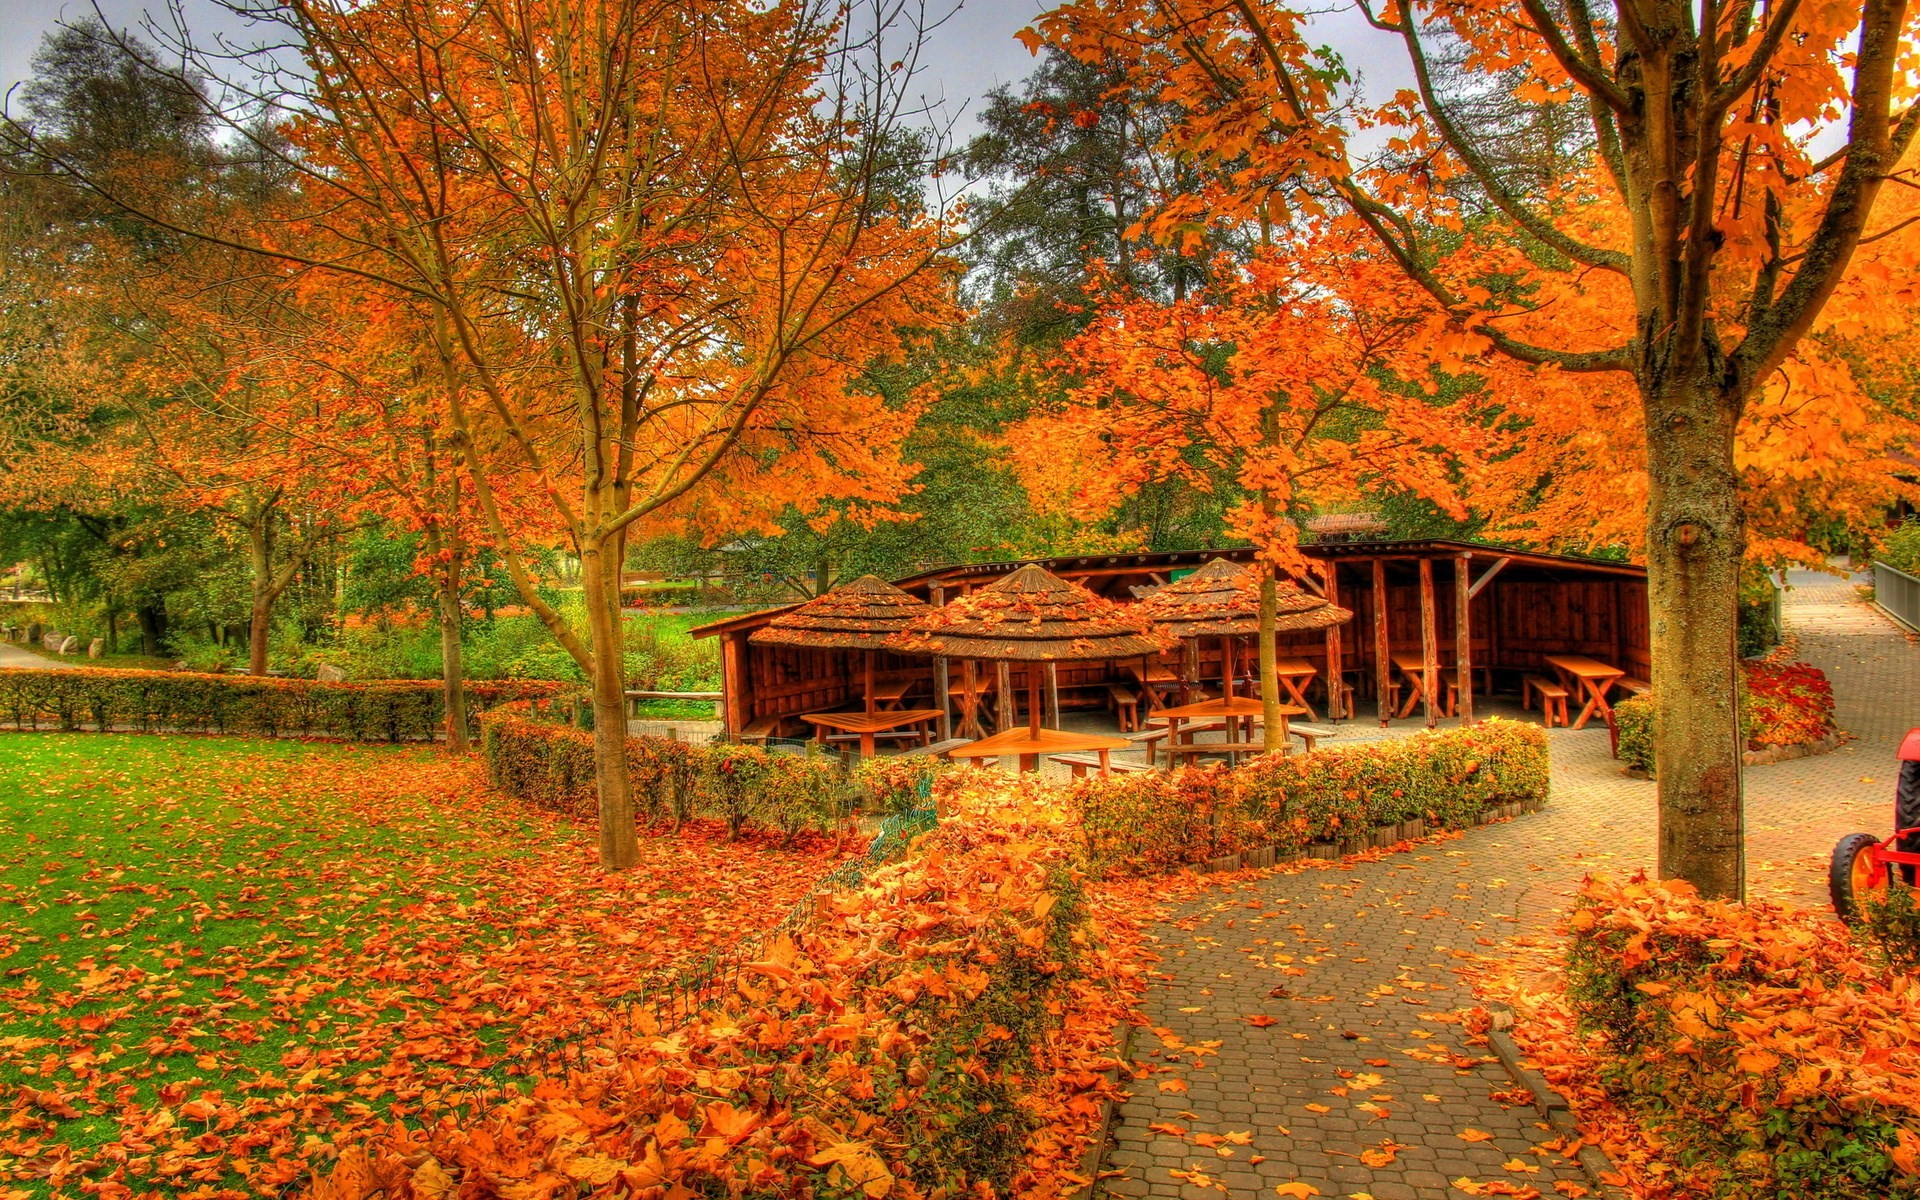 fall wallpaper hd backgrounds images